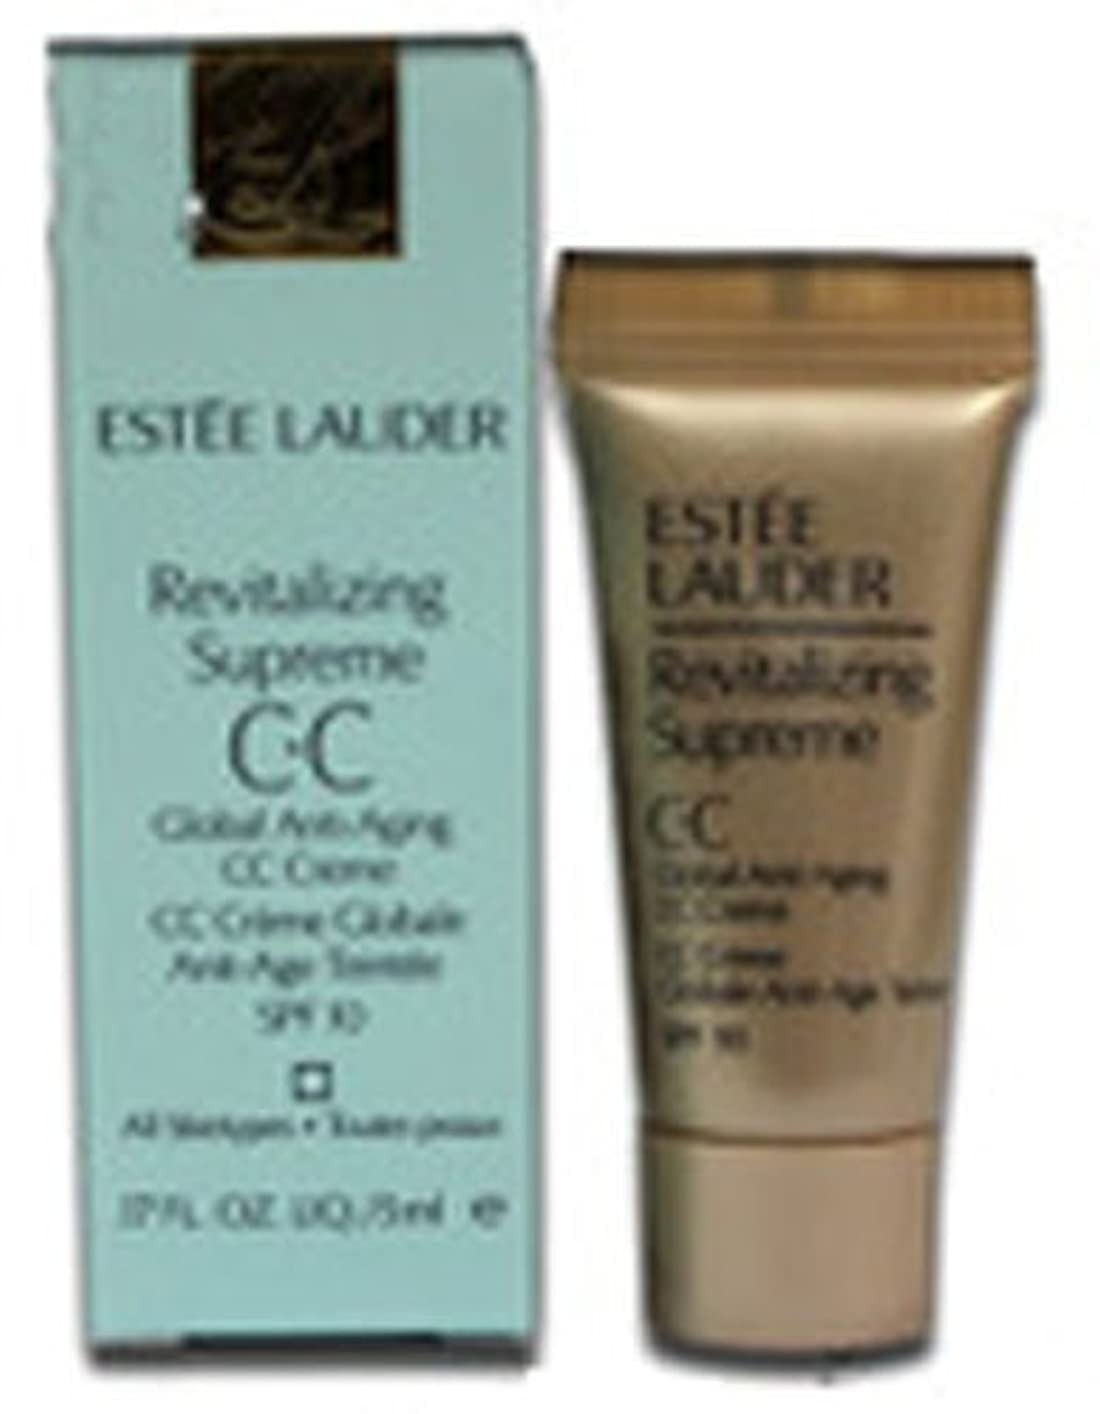 ソファー回答葉エスティローダー REVITALIZING SUPREME GLOBAL AG C?C CREME SPF10 SPF10 5ml ESTEE LAUDER [並行輸入品]